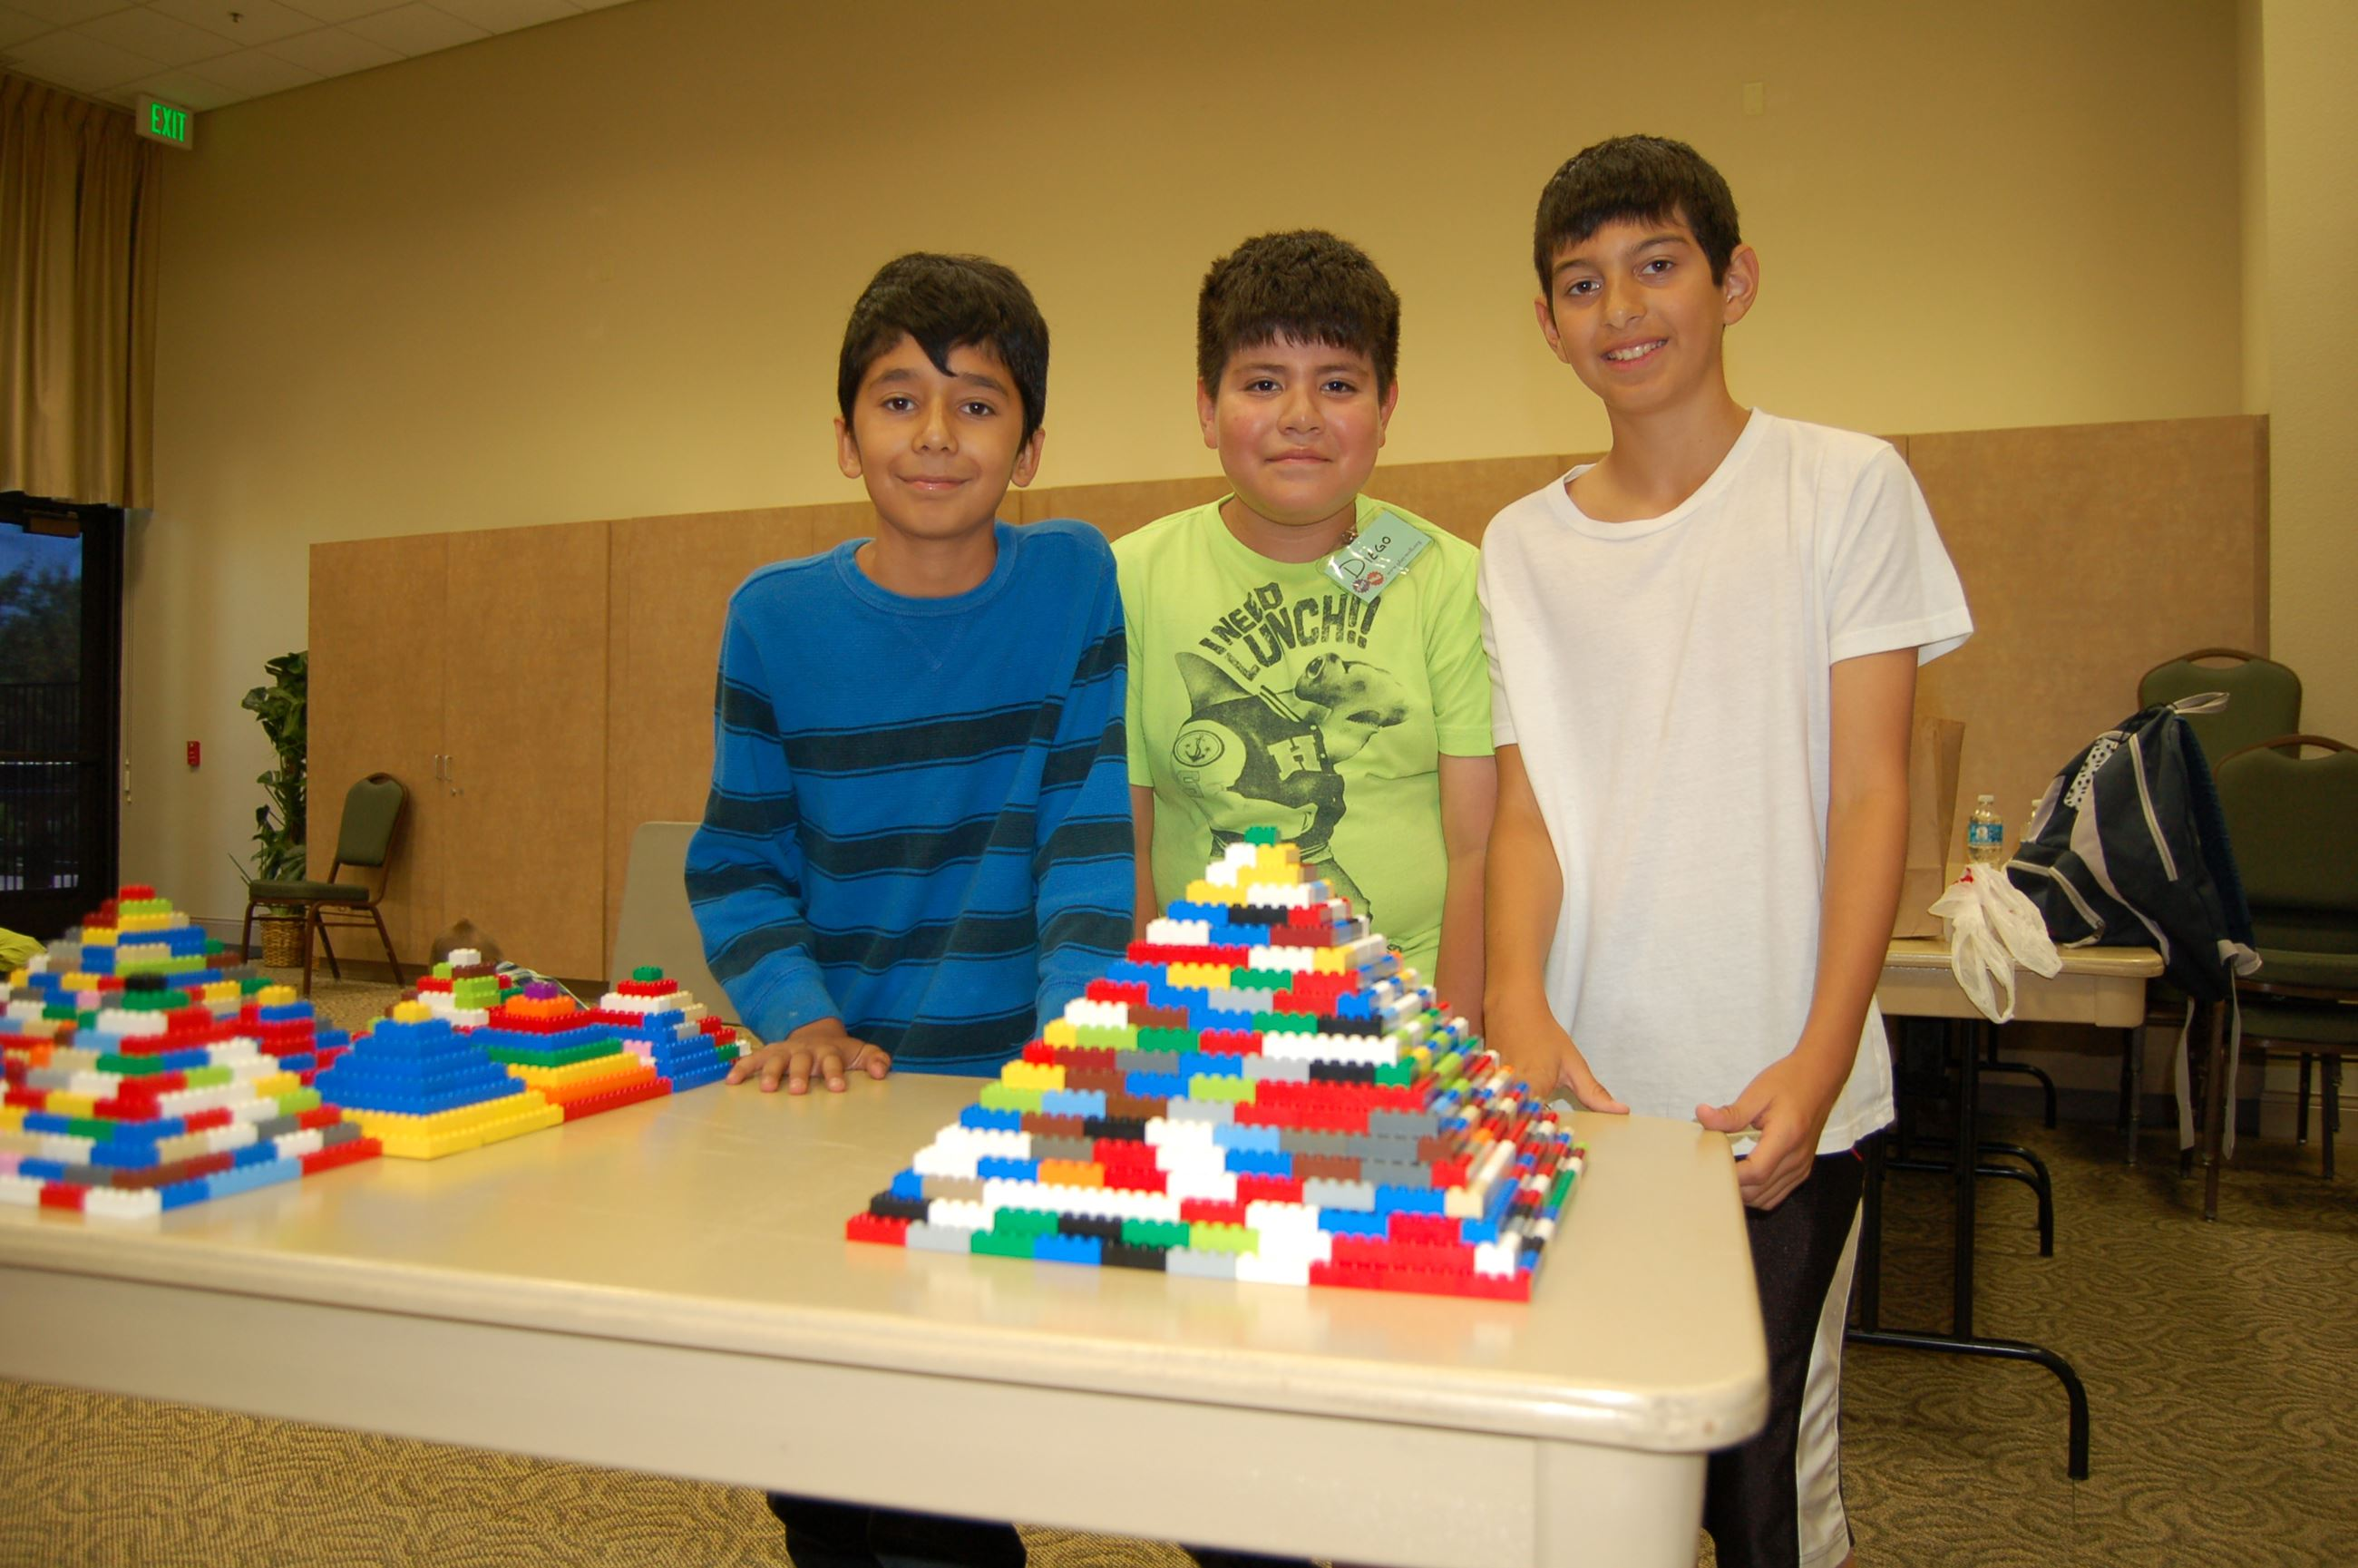 Three Boys by Legos